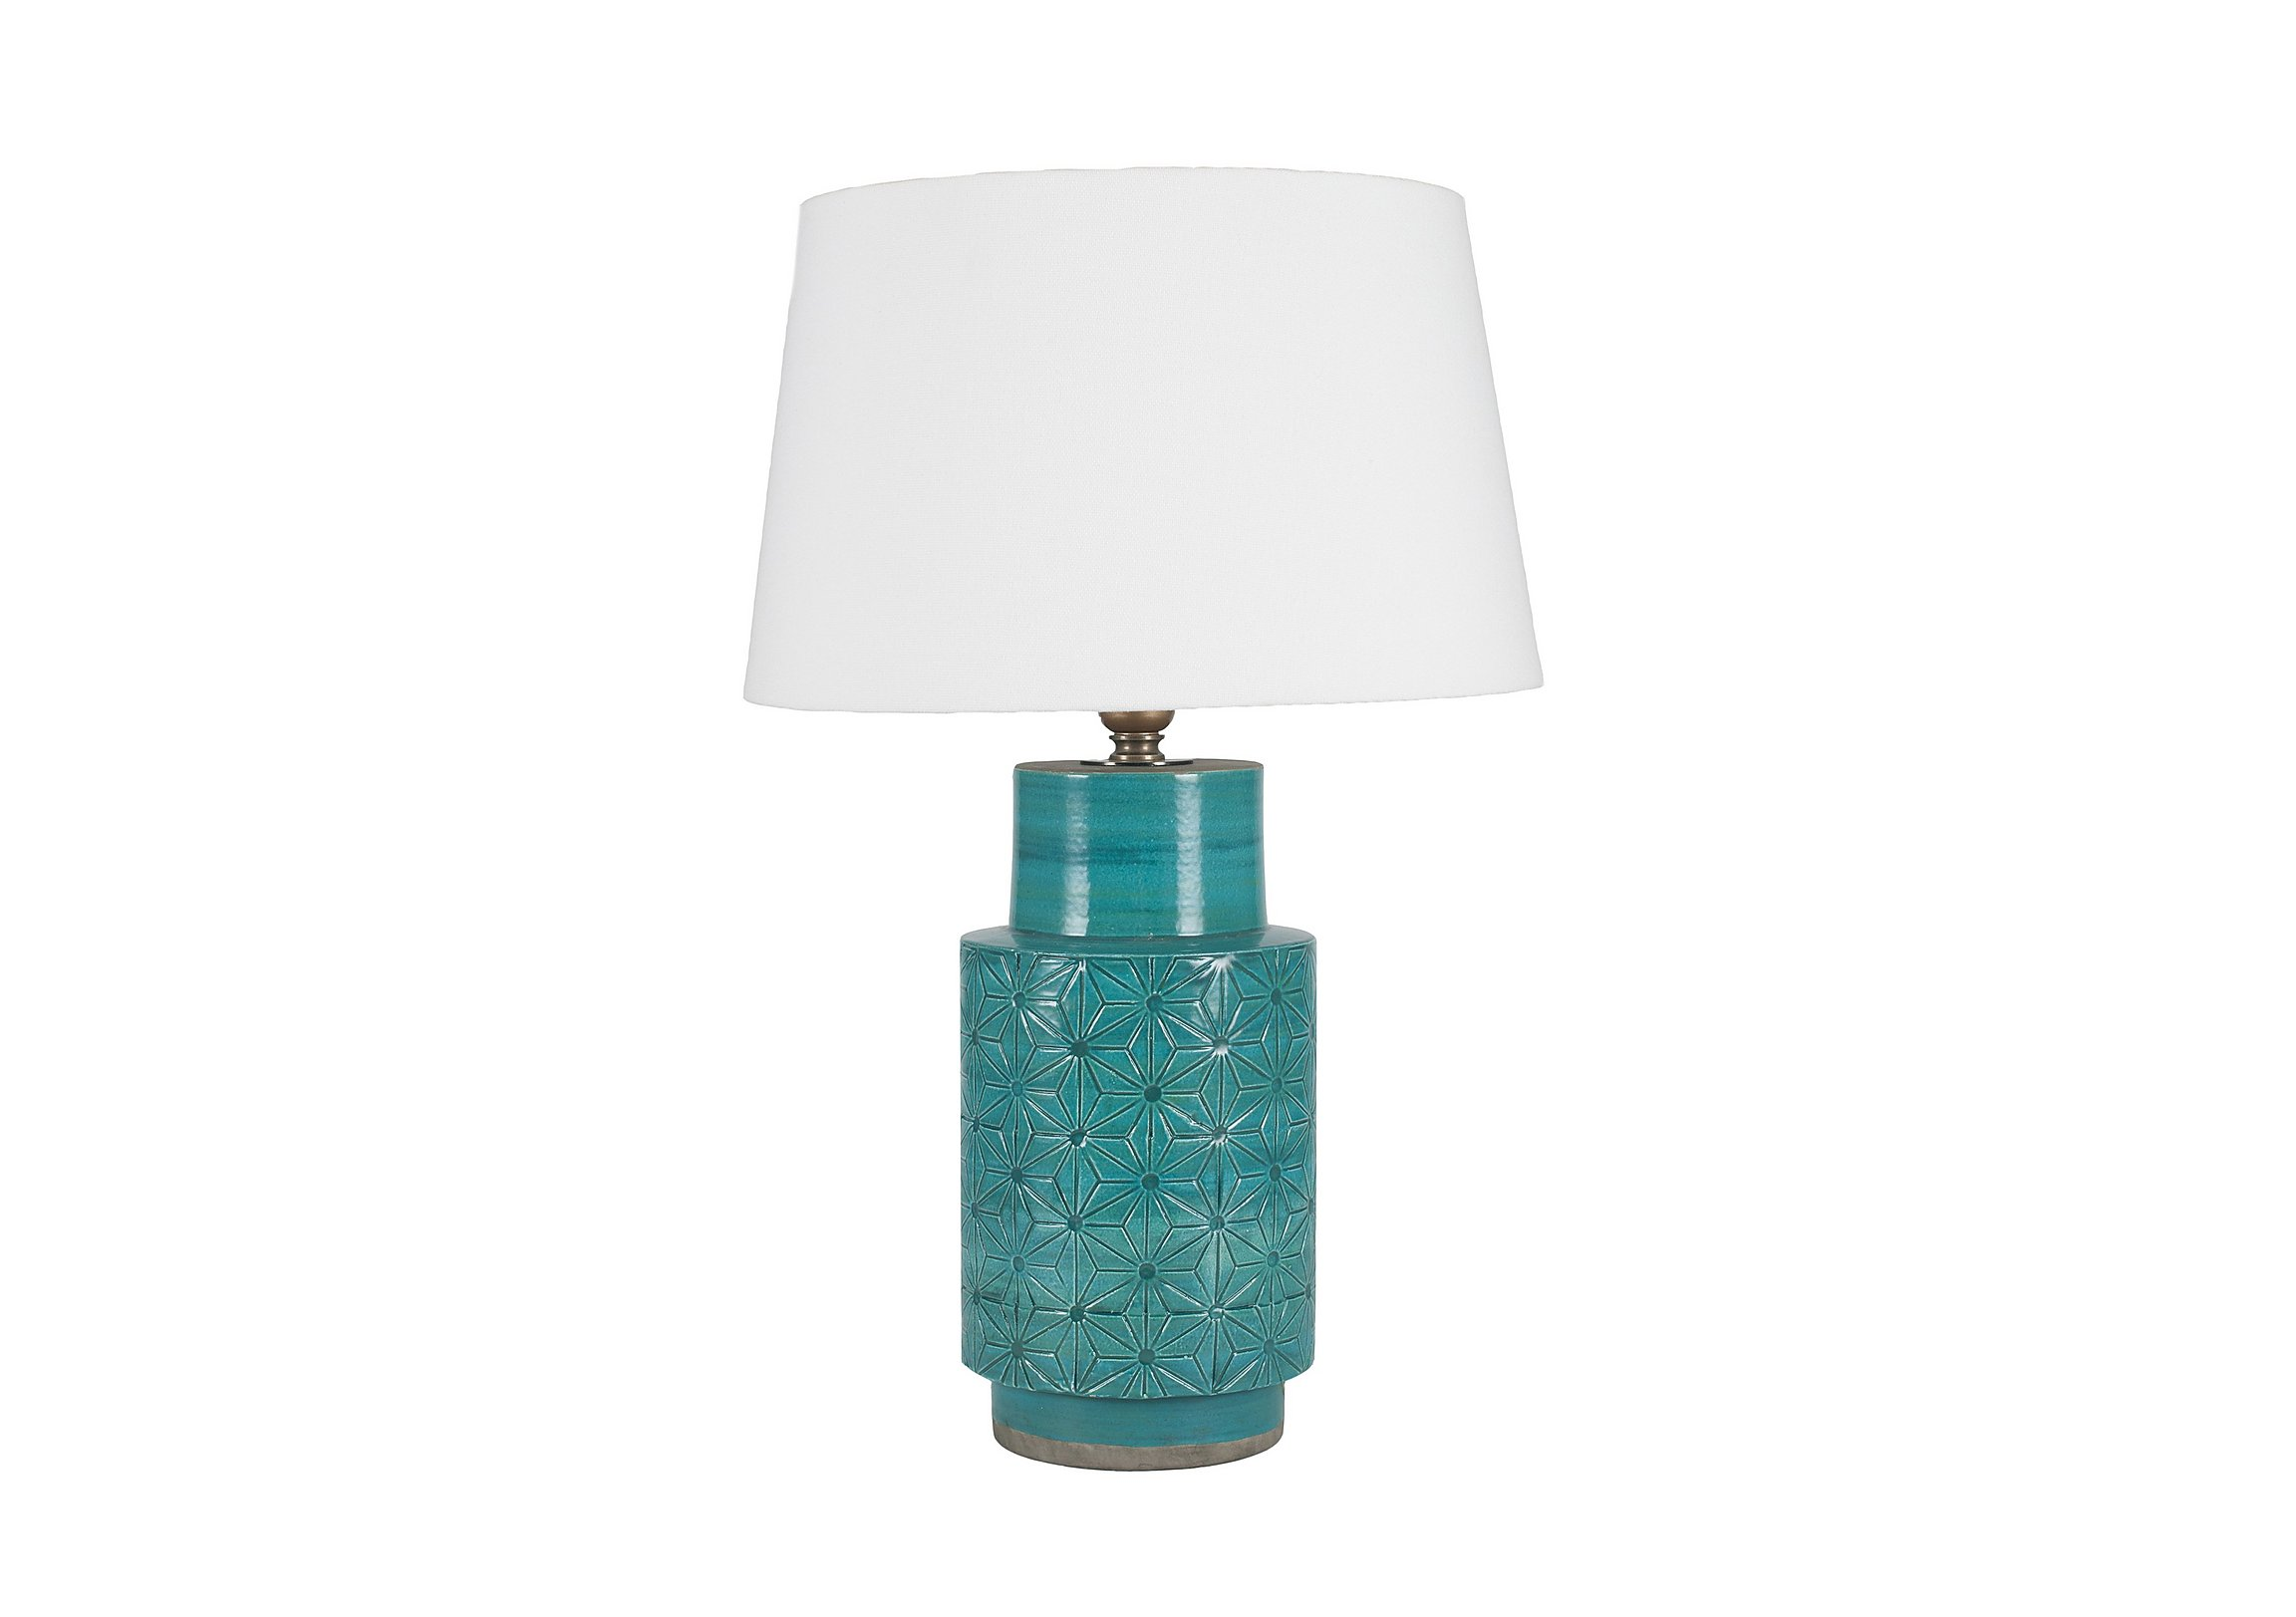 Ceri aqua table lamp furniture village ceri aqua table lamp loading images geotapseo Images